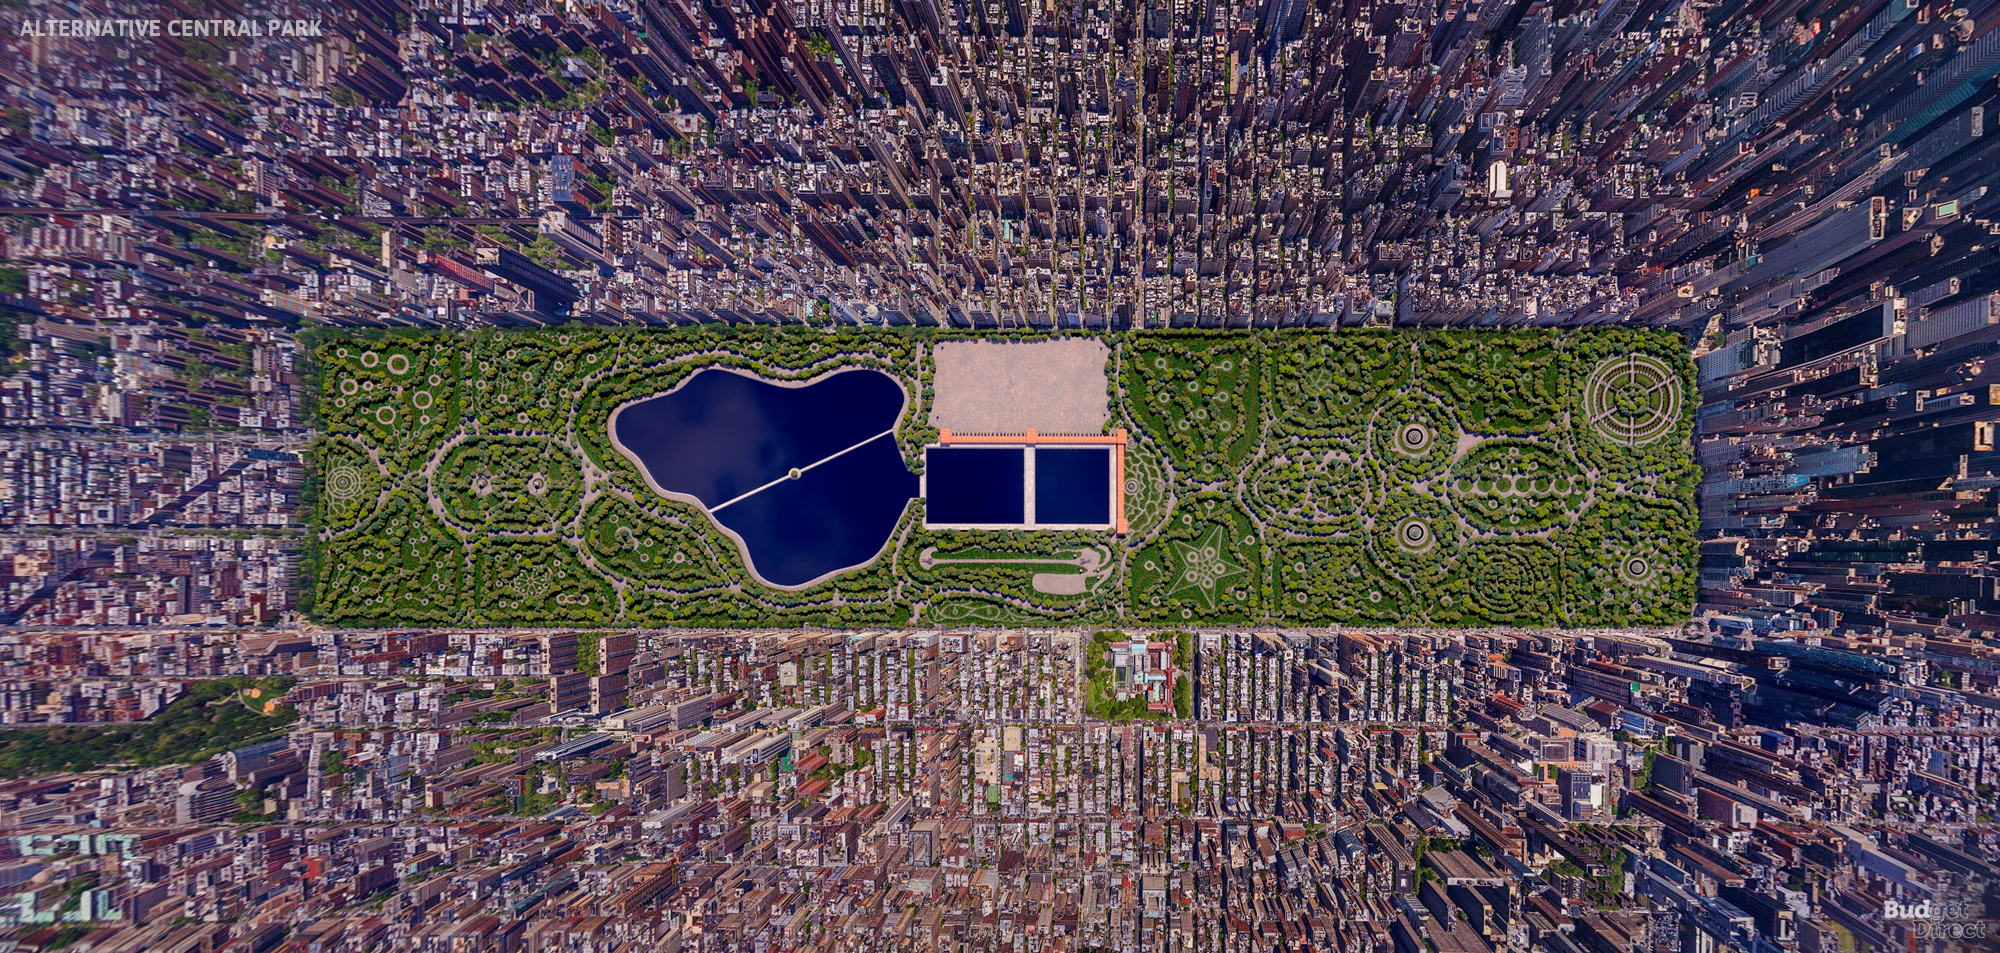 Central Park alternative design